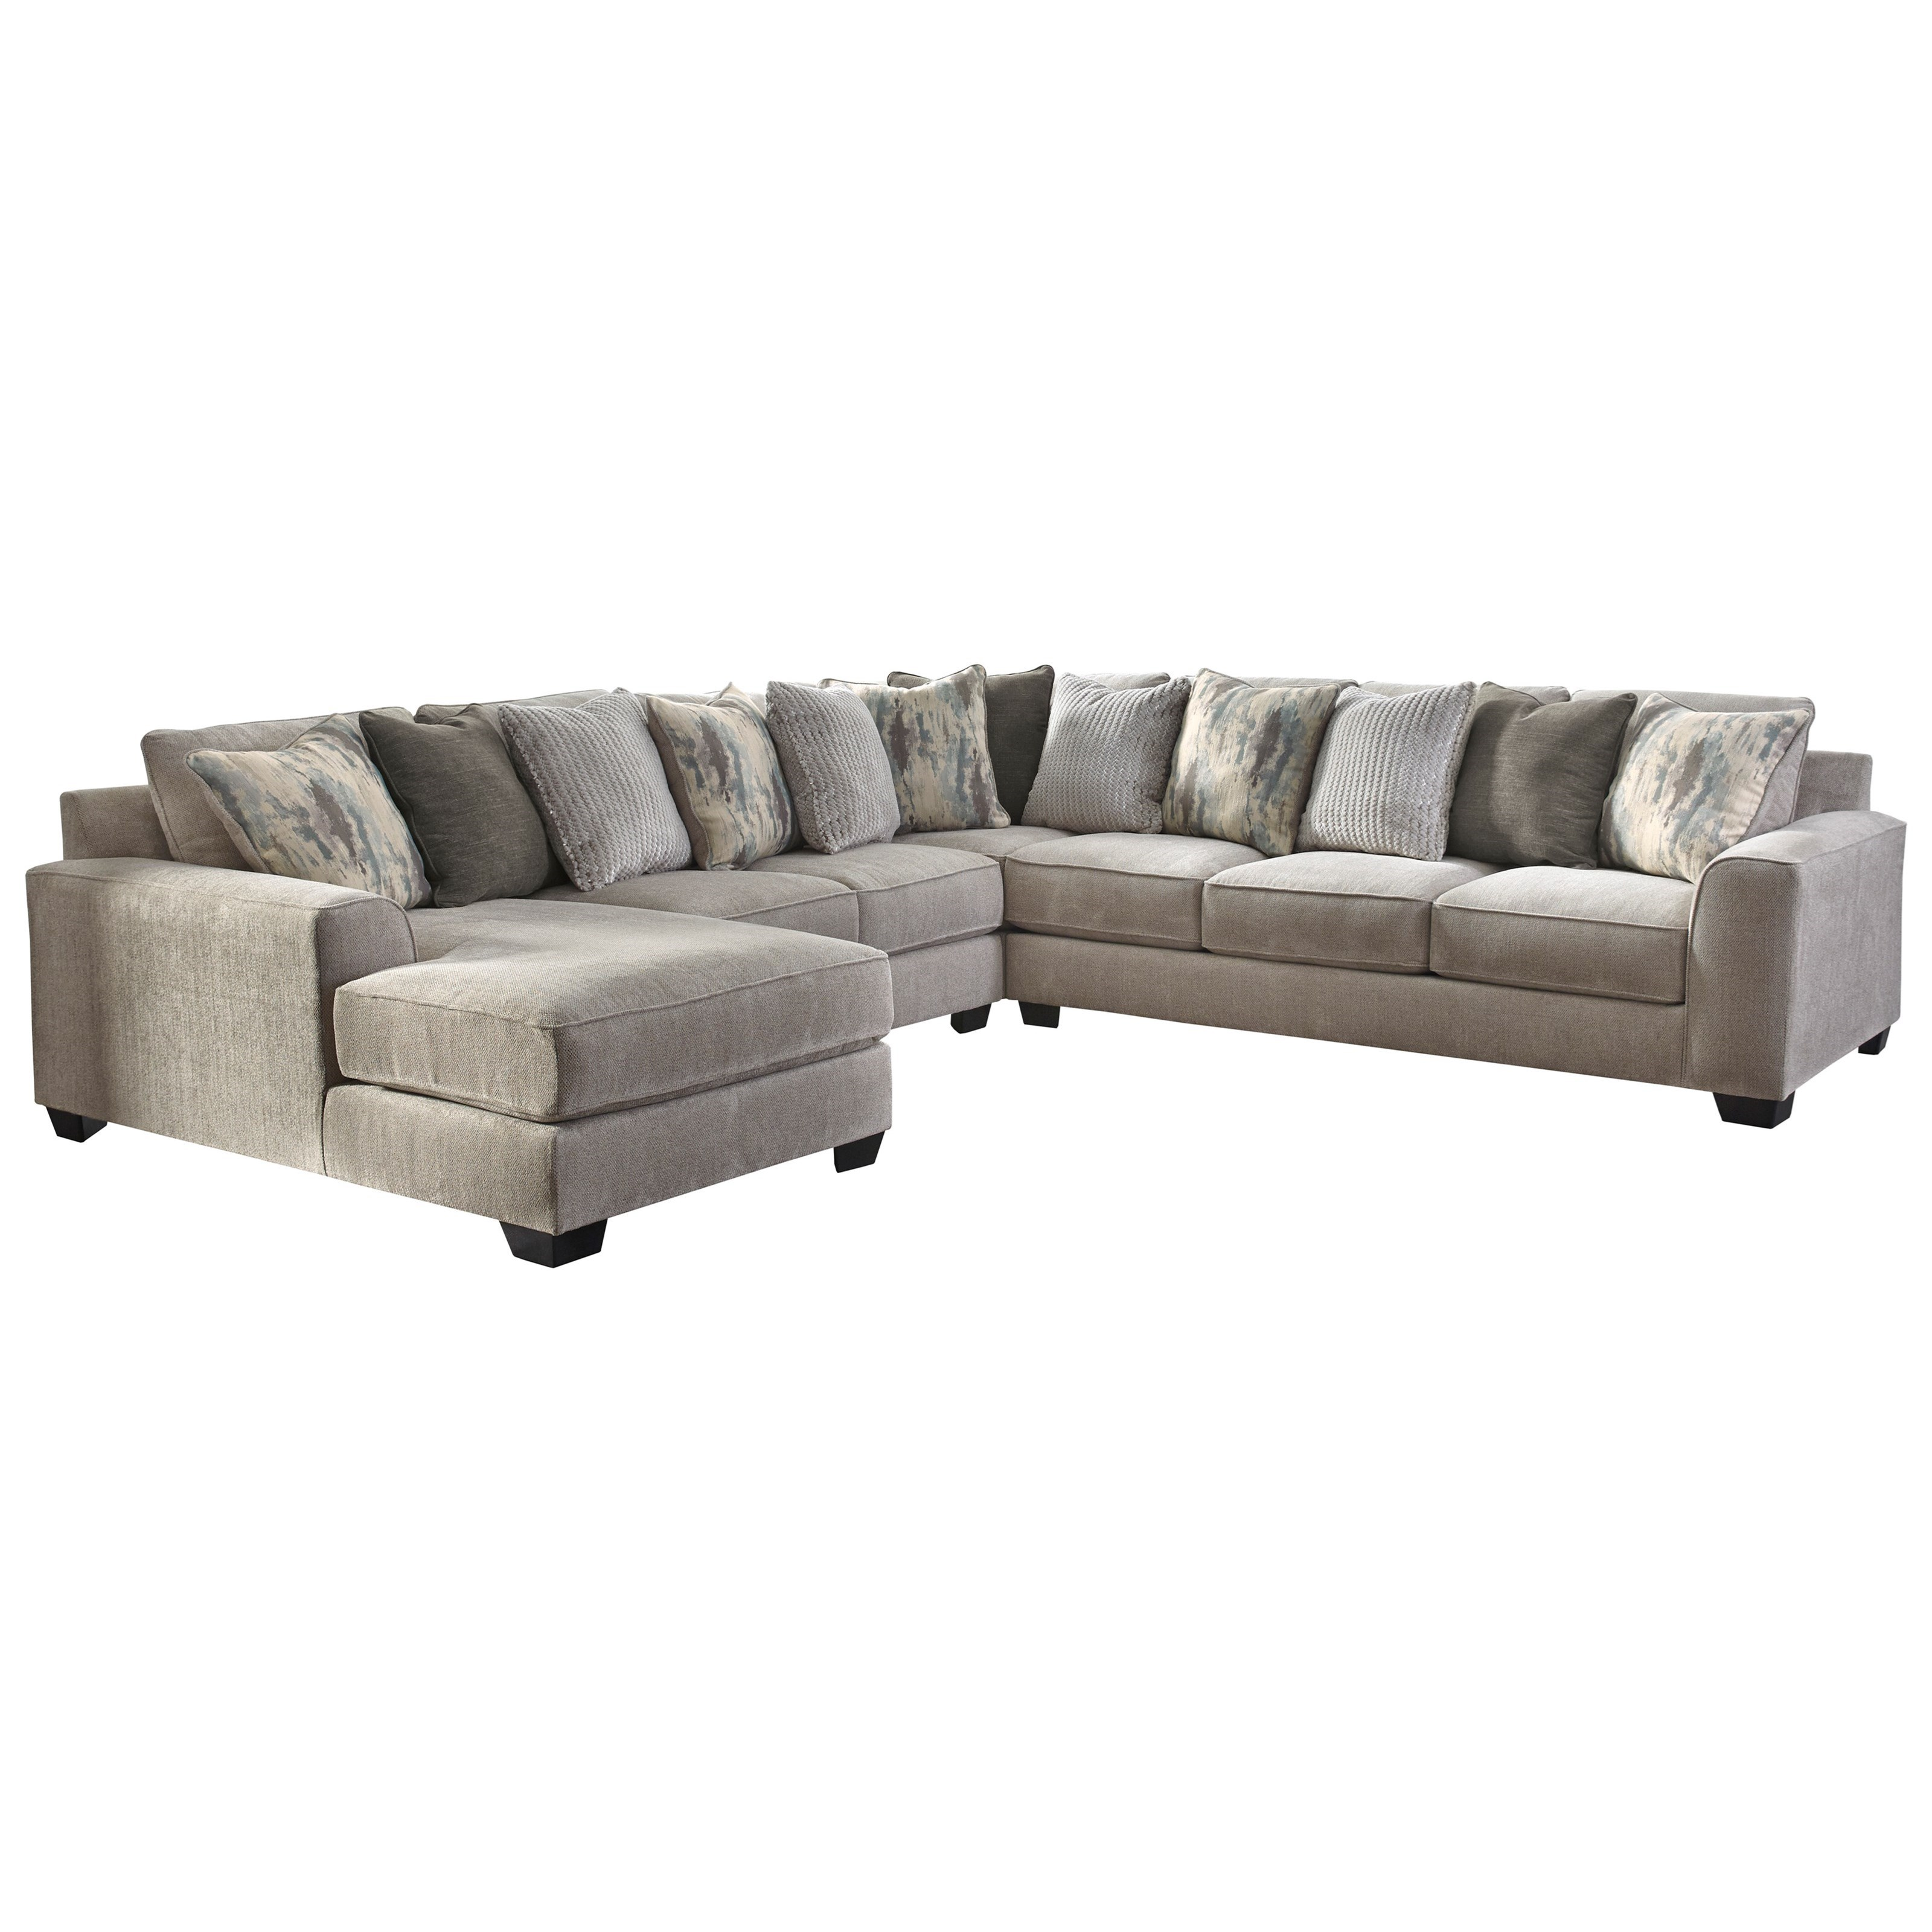 Ardsley 4-Piece Sectional with Left Chaise by Benchcraft at Northeast Factory Direct